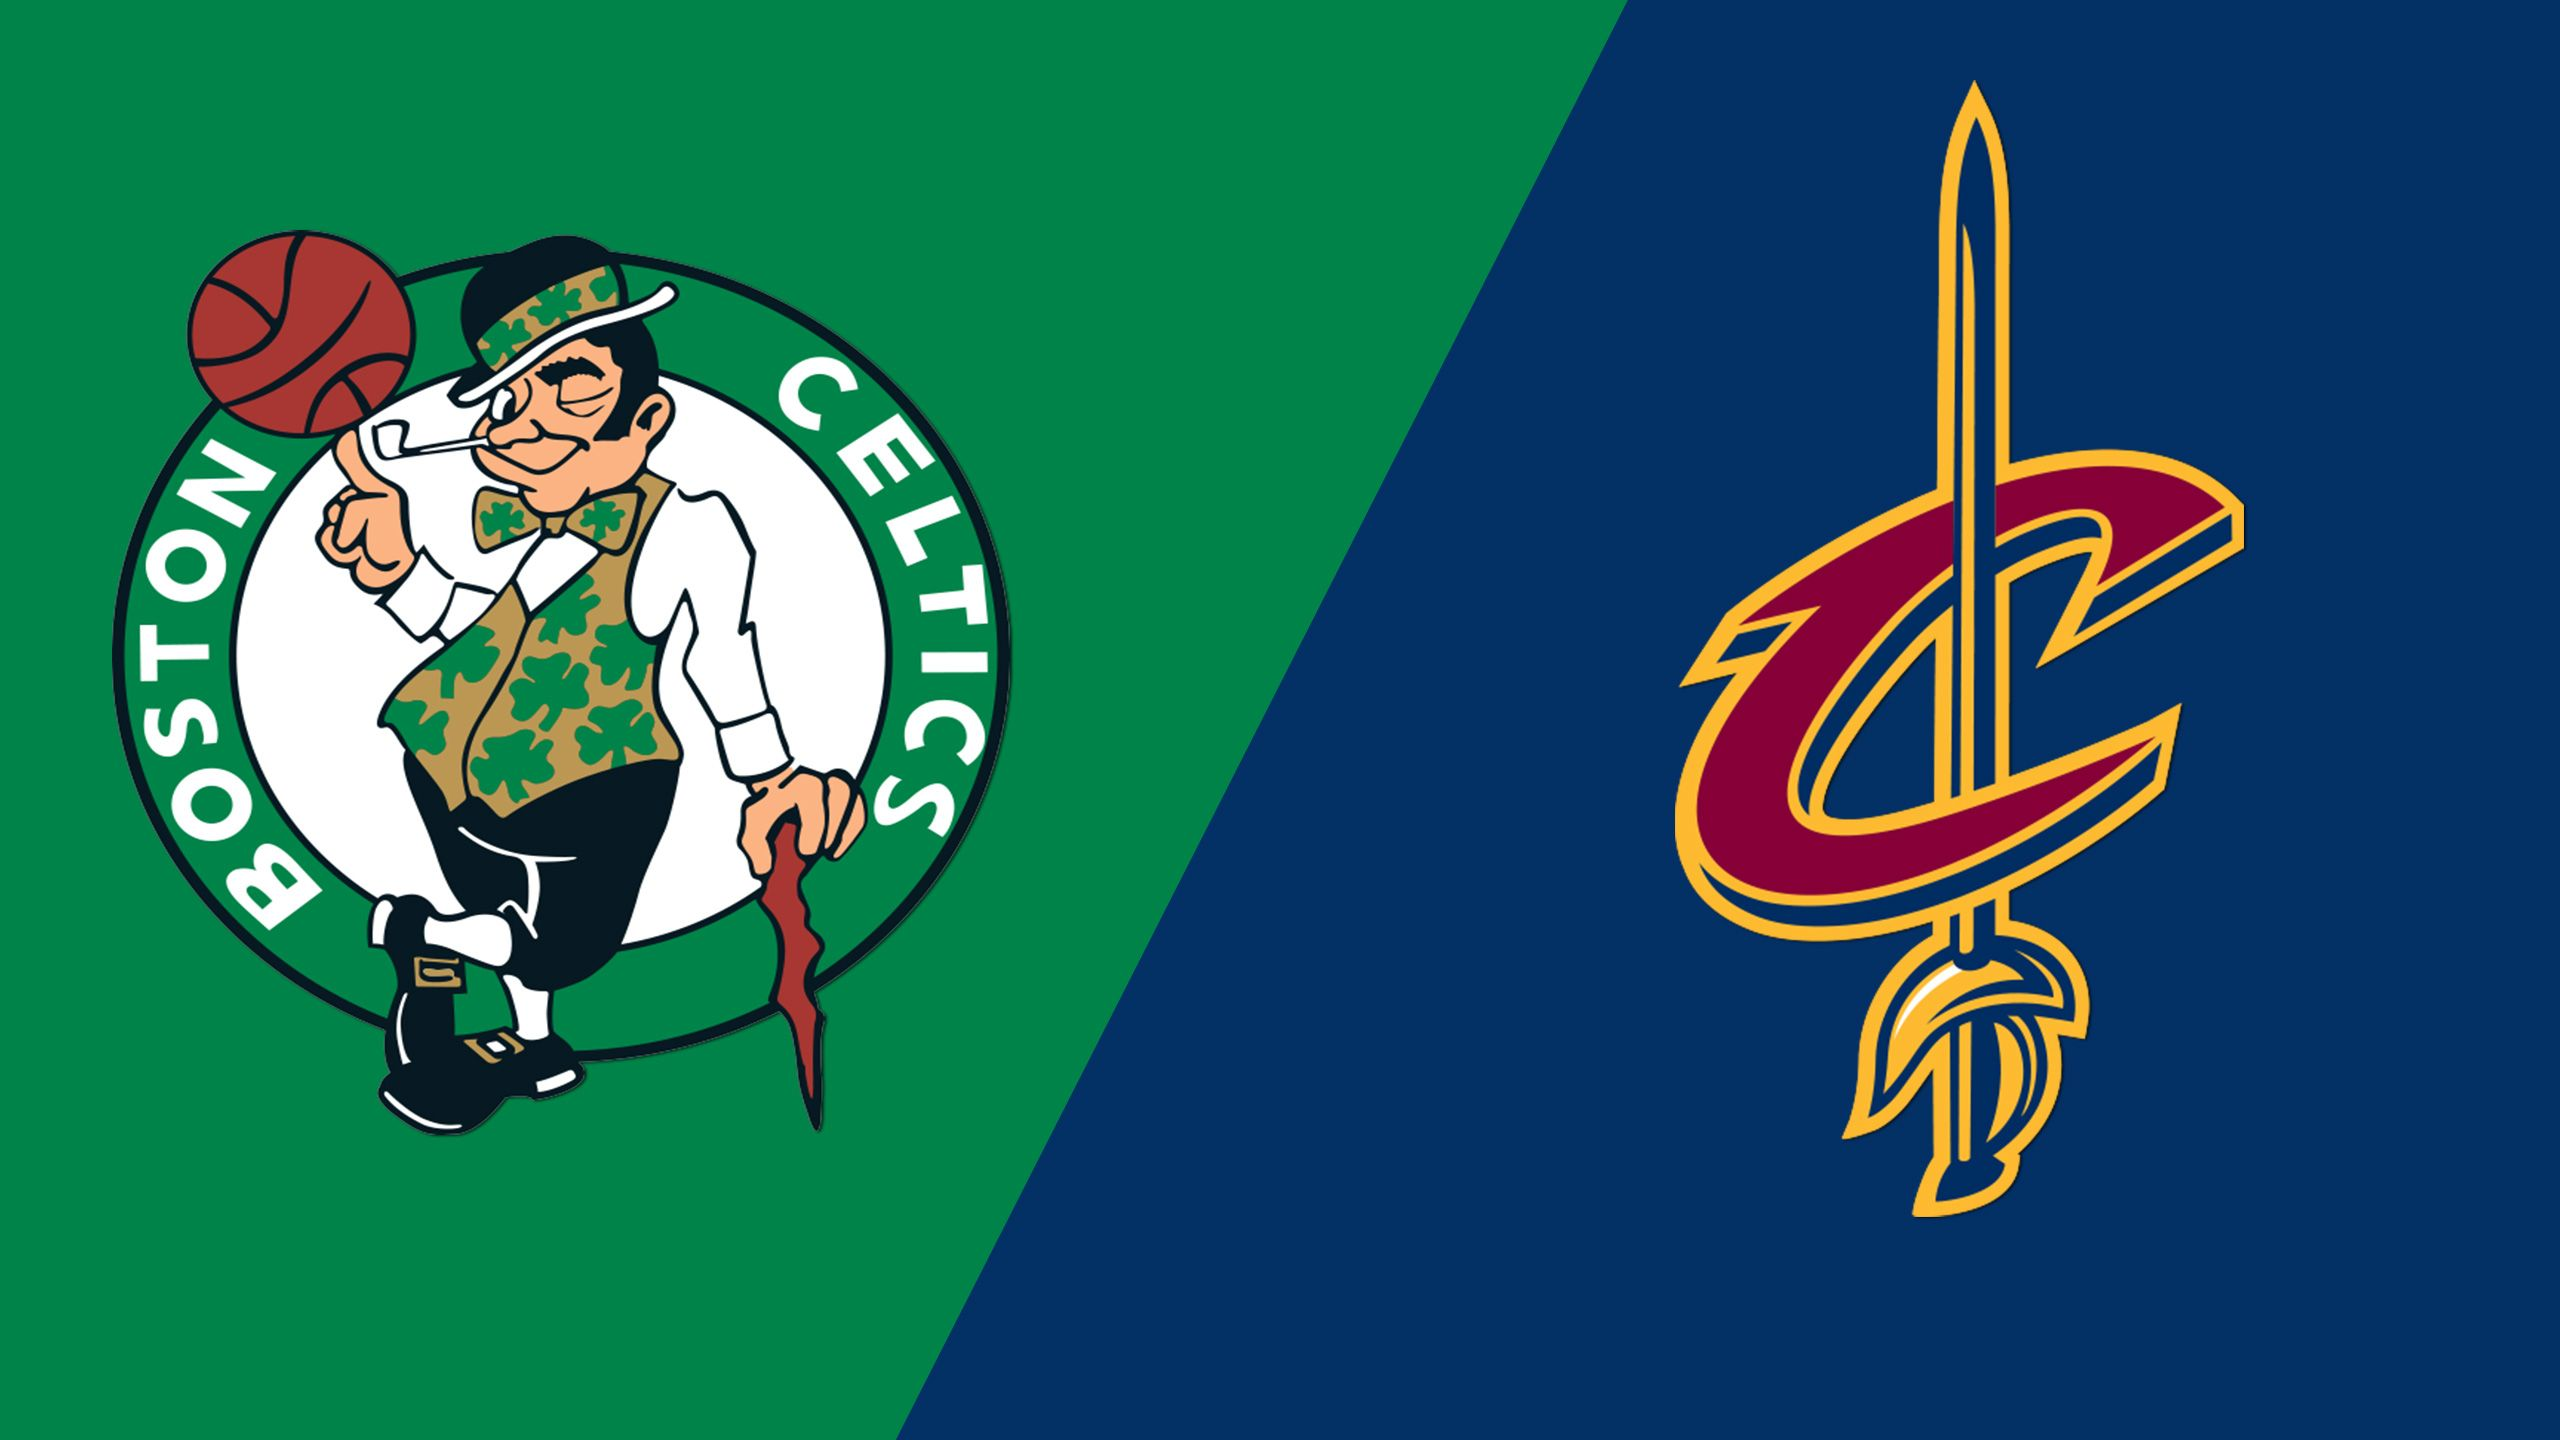 In Spanish - Boston Celtics vs. Cleveland Cavaliers (Conference Finals Game 3)